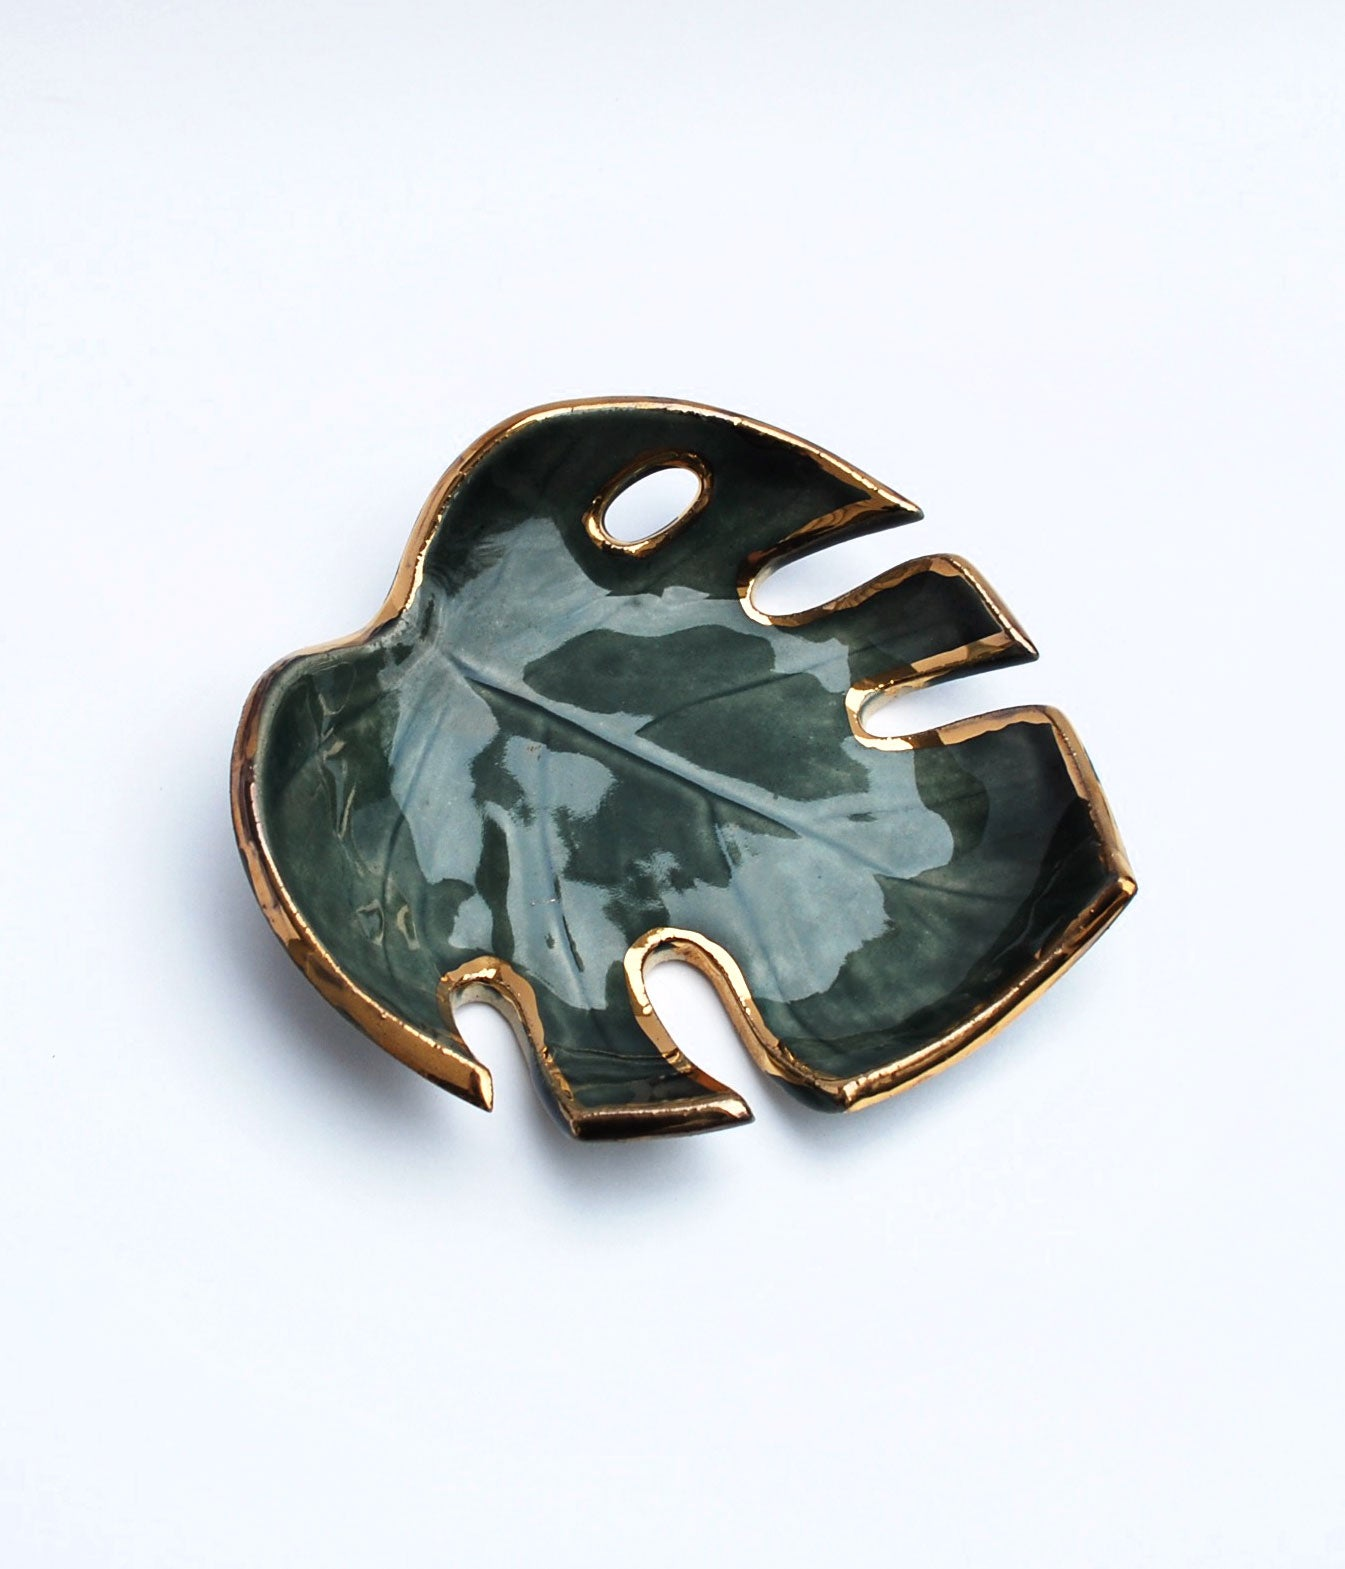 Dark green Monstera leaf bowl with gold luster on the edges